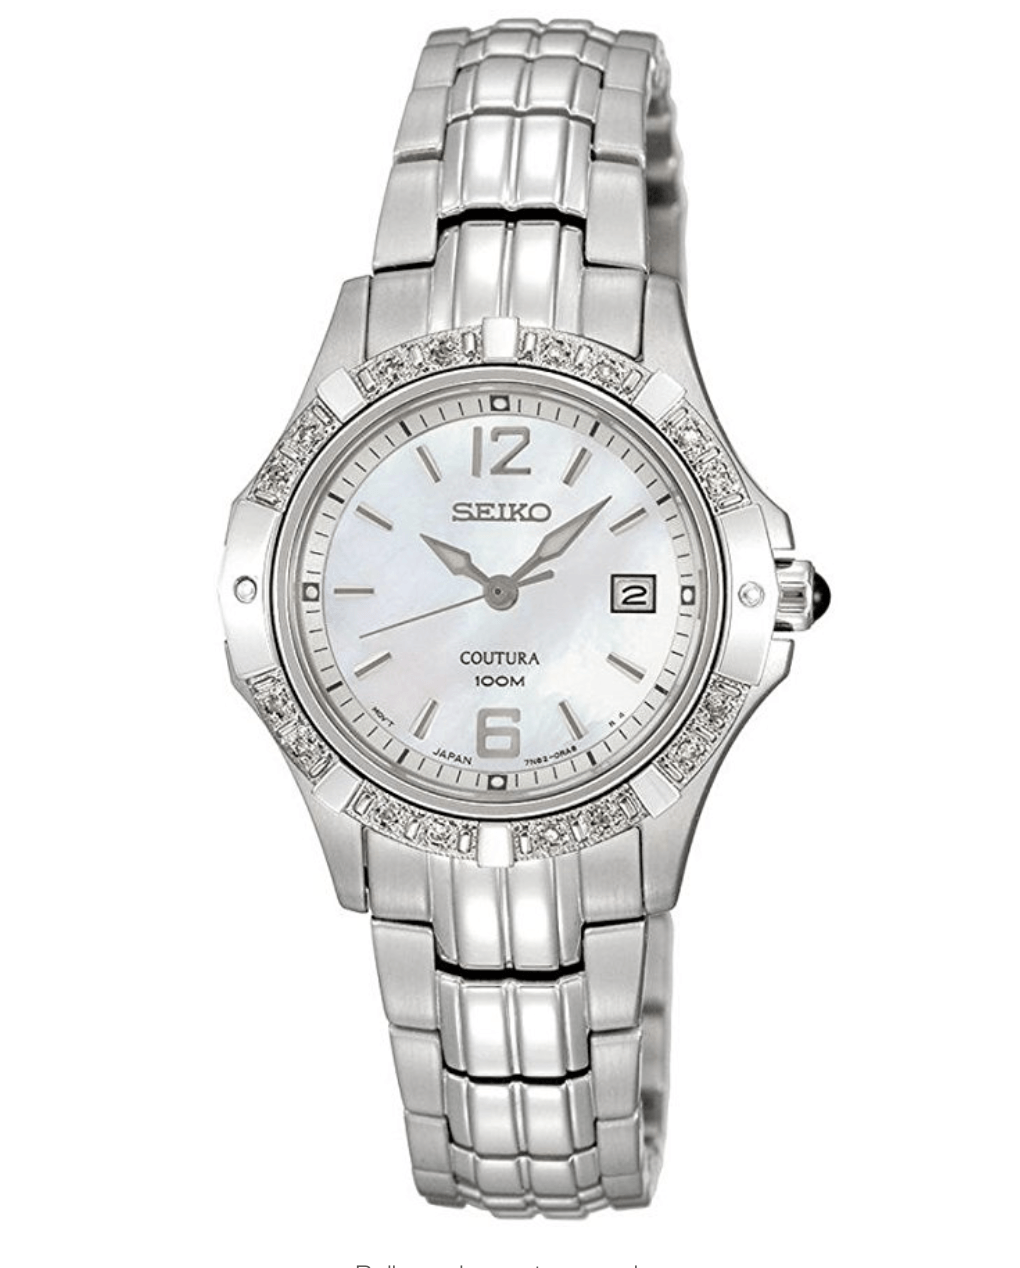 Seiko - SXDE19, Women's Watch, SEIKO - Birmingham Jewelry